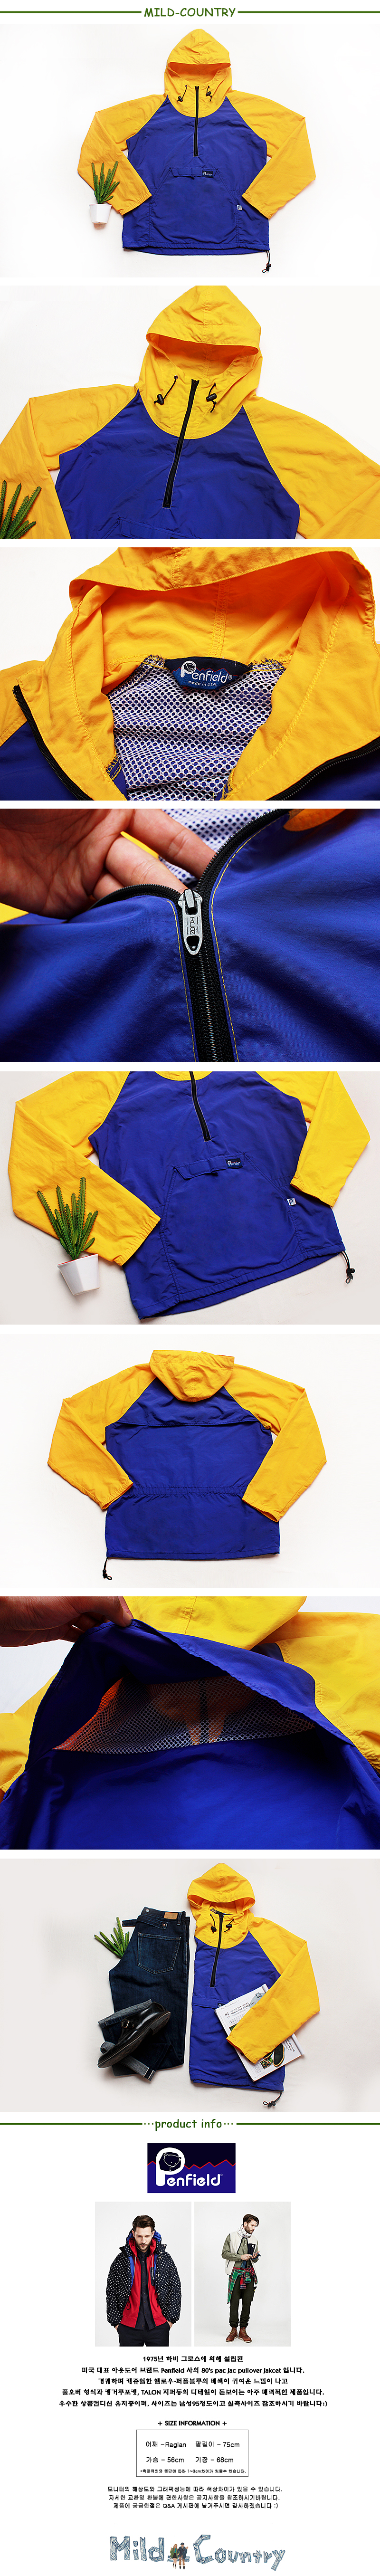 Us penfield pac jac pullover jacketmade in usa ss